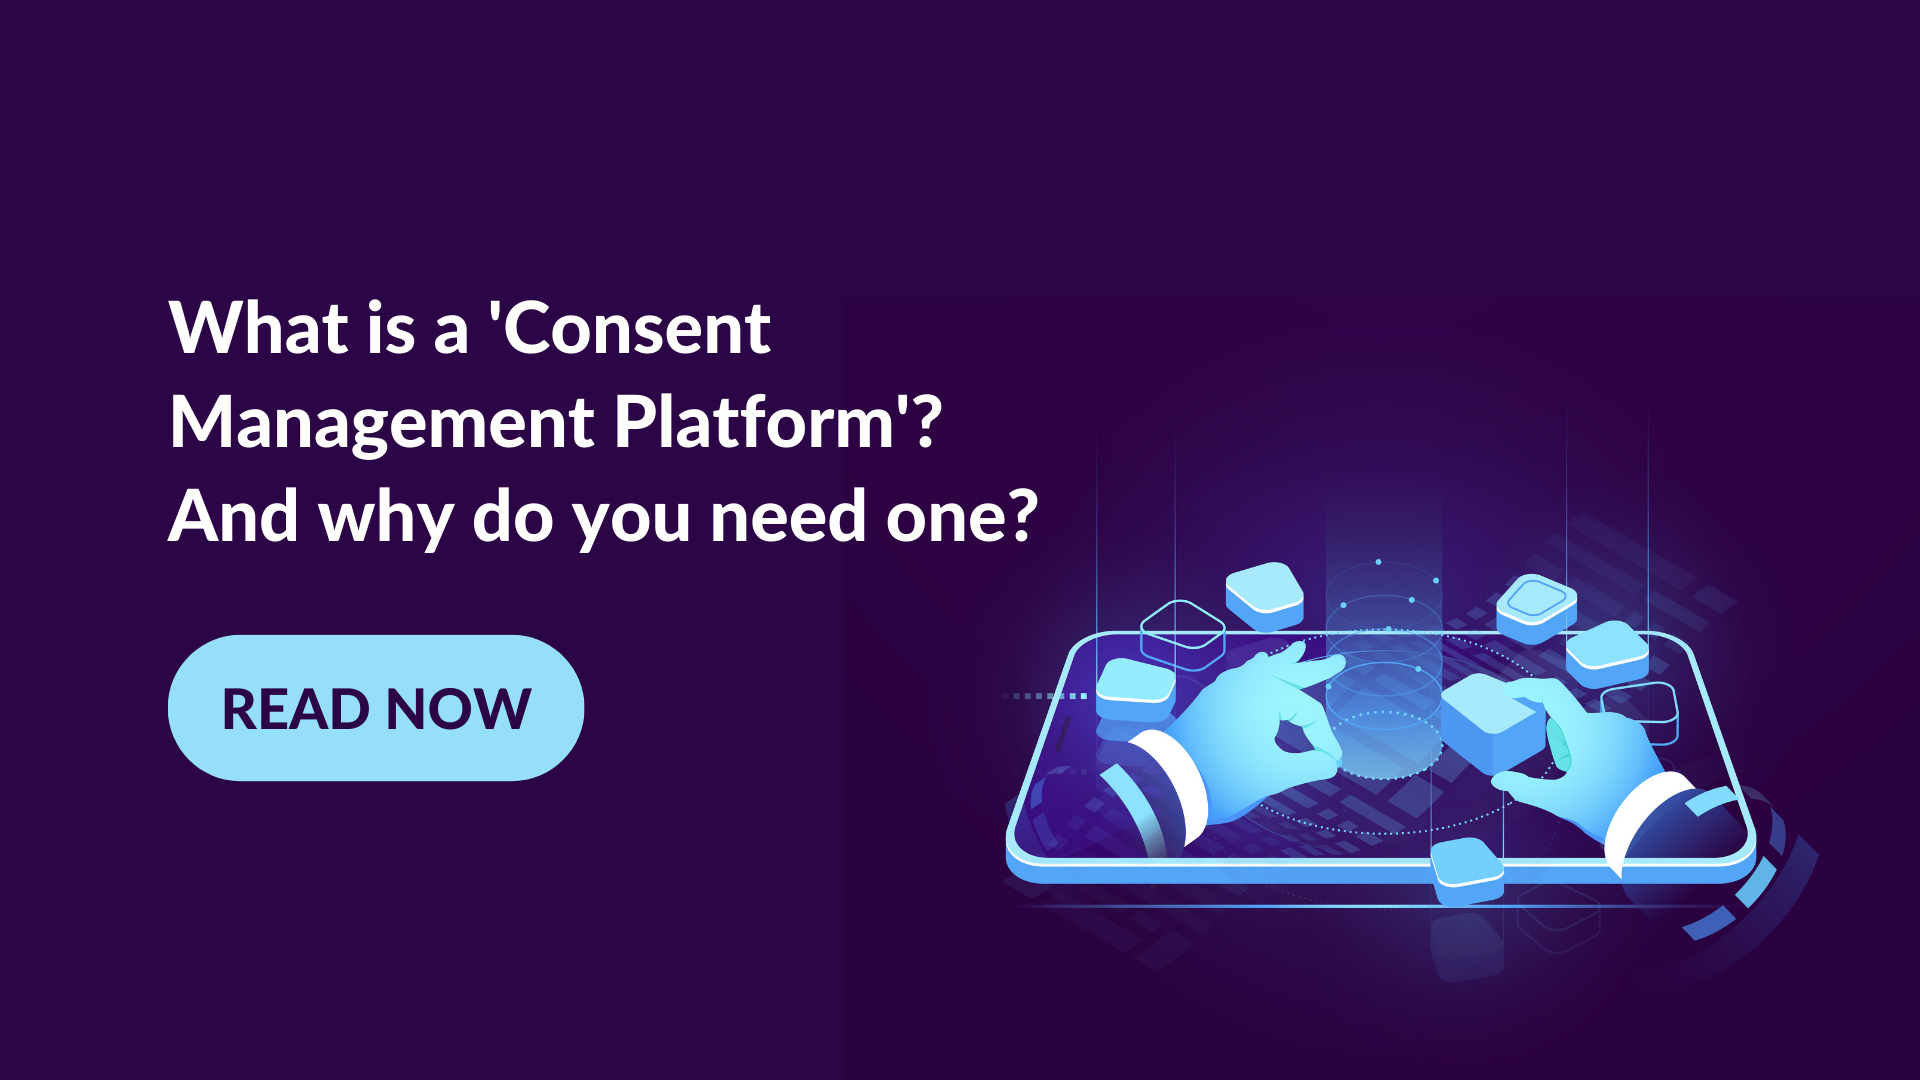 What is a 'Consent Management Platform'? And why do you need one?